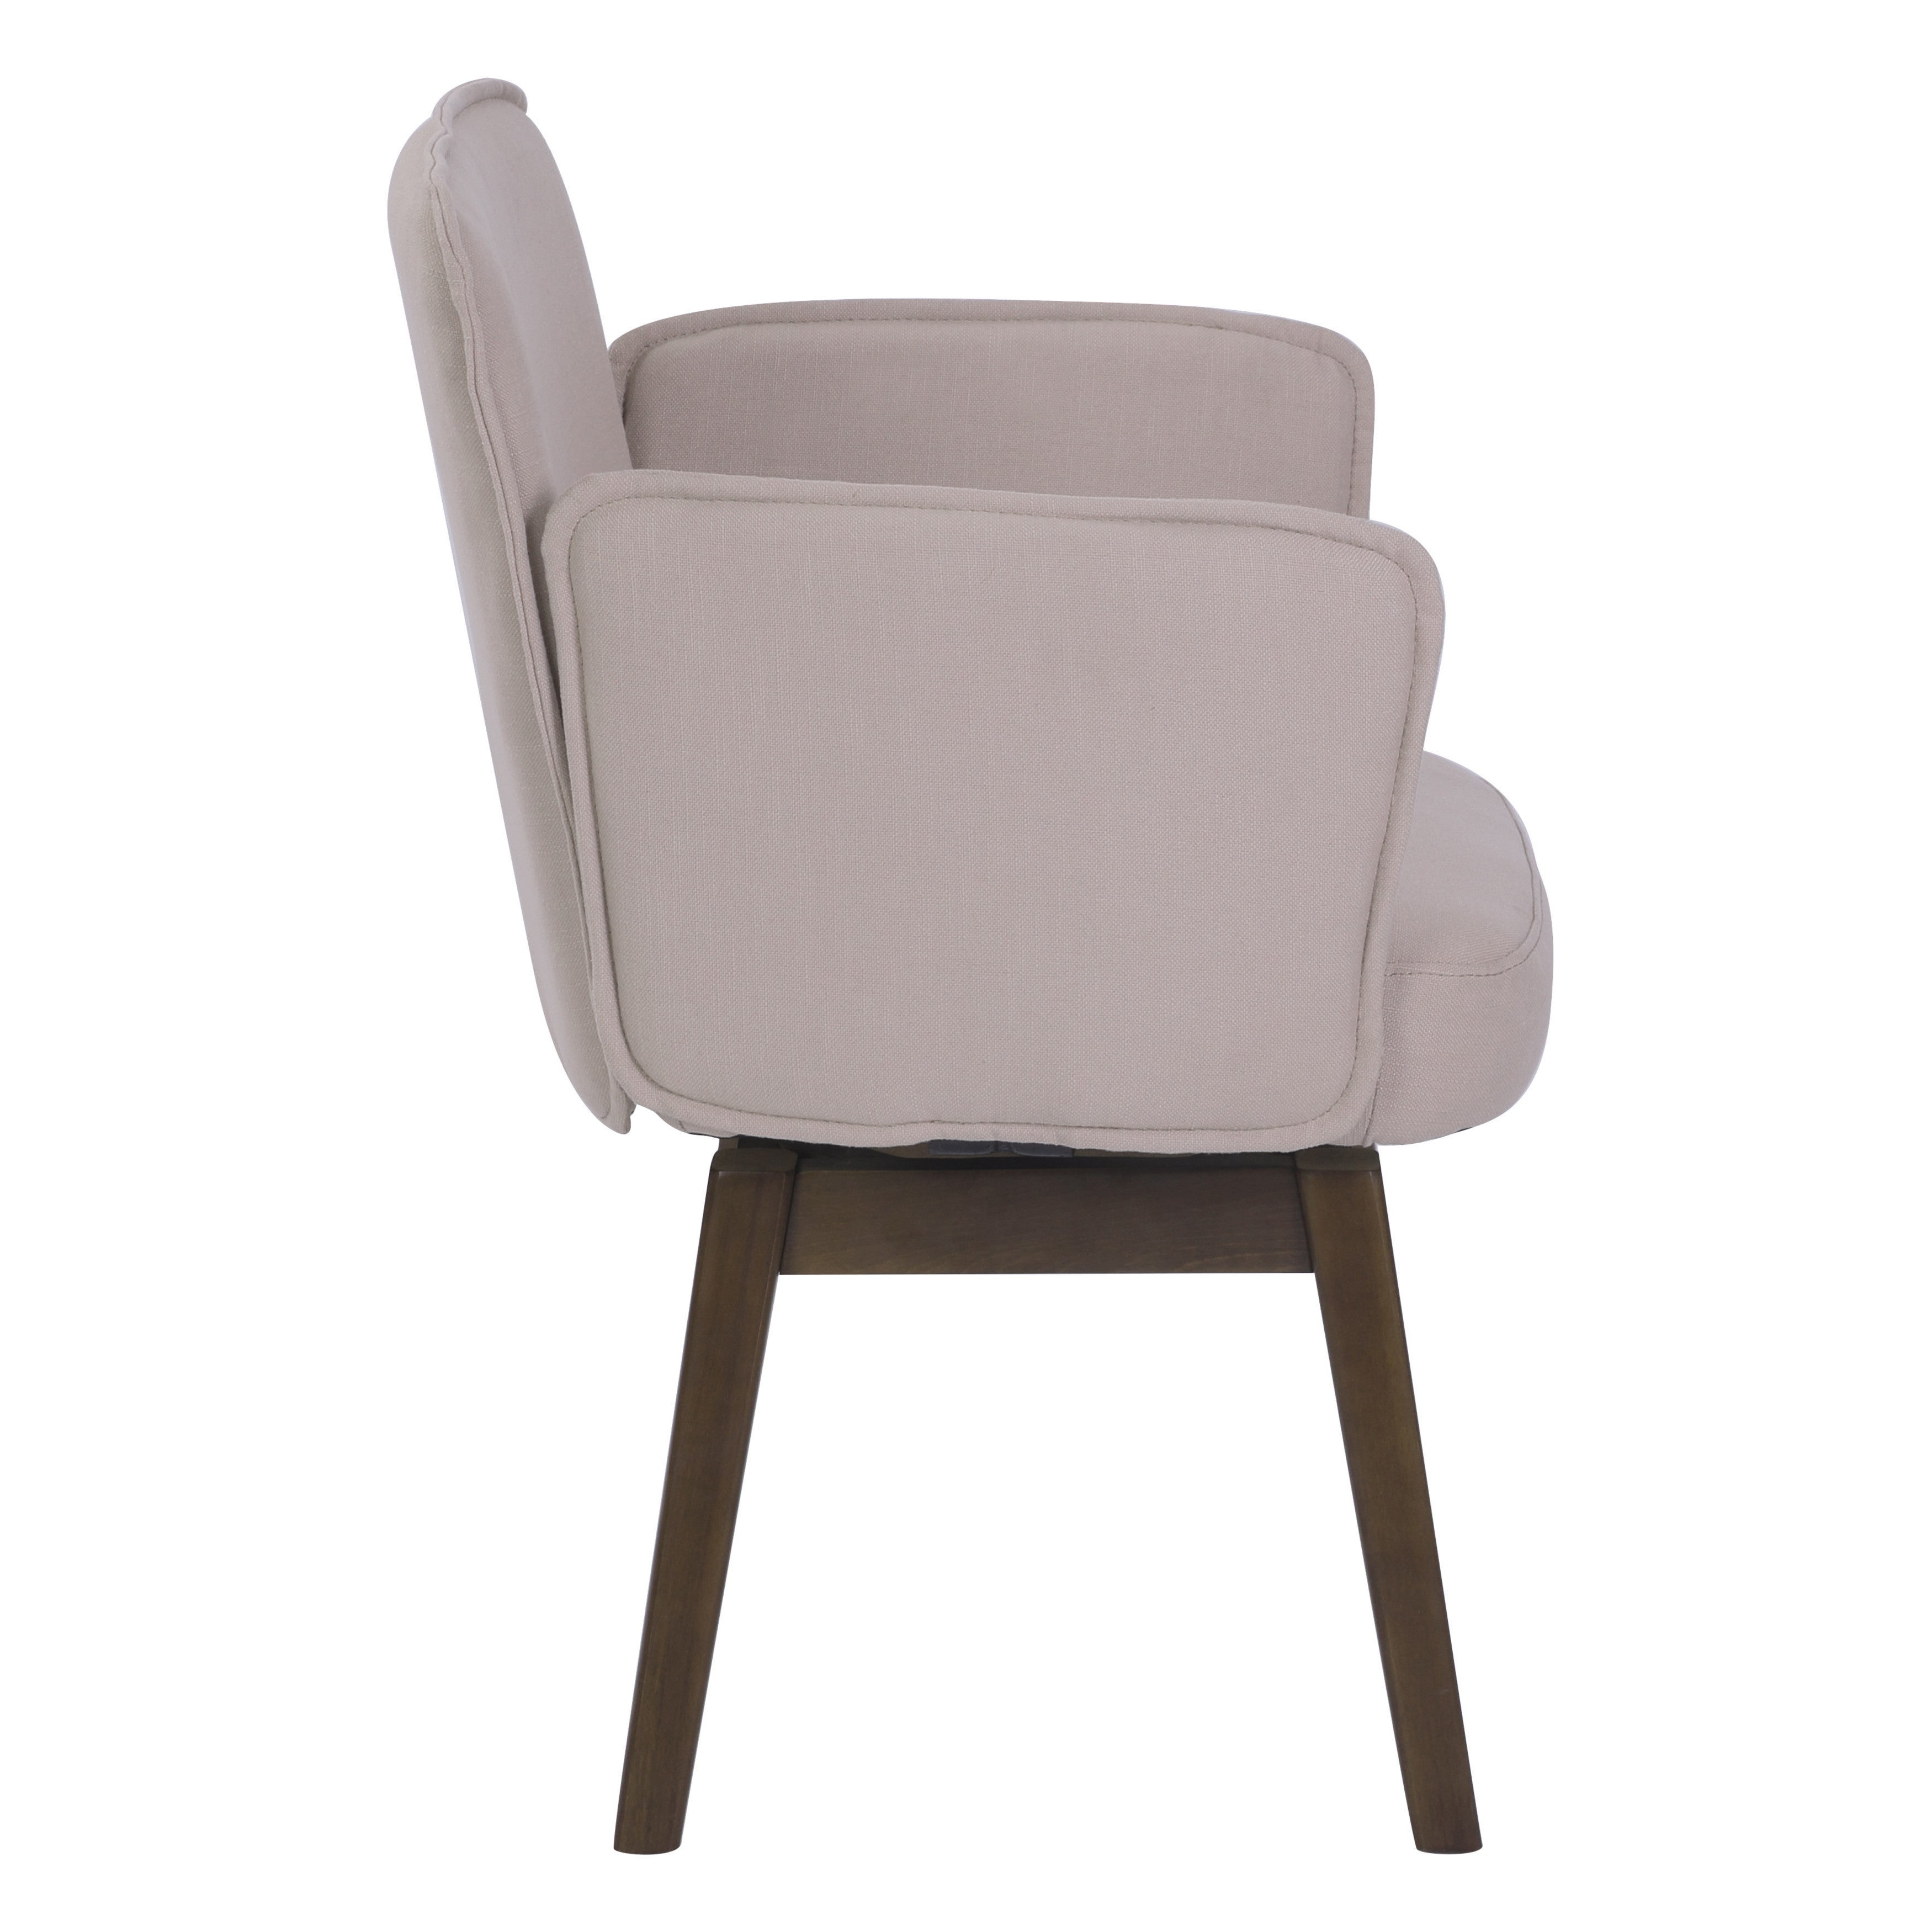 Remarkable Details About Elle Decor Esme White And Pink Home Office Chair Ibusinesslaw Wood Chair Design Ideas Ibusinesslaworg